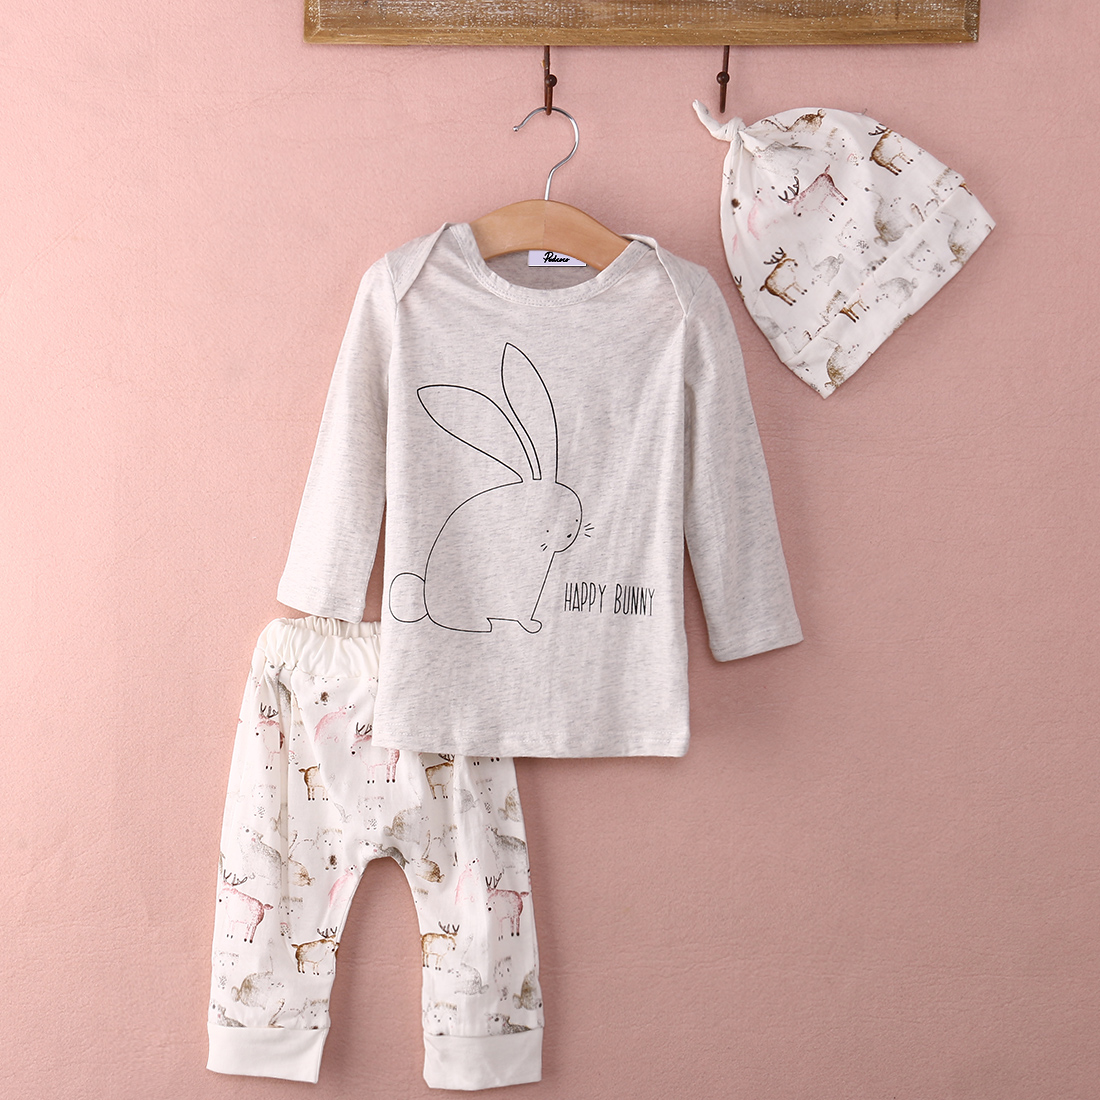 Soft Baby outfits clothes homewear Infant Baby Girl Bunny Cotton T shirt Tops Print Pants Hat 3pcs Home Outfits Set Clothing Boy